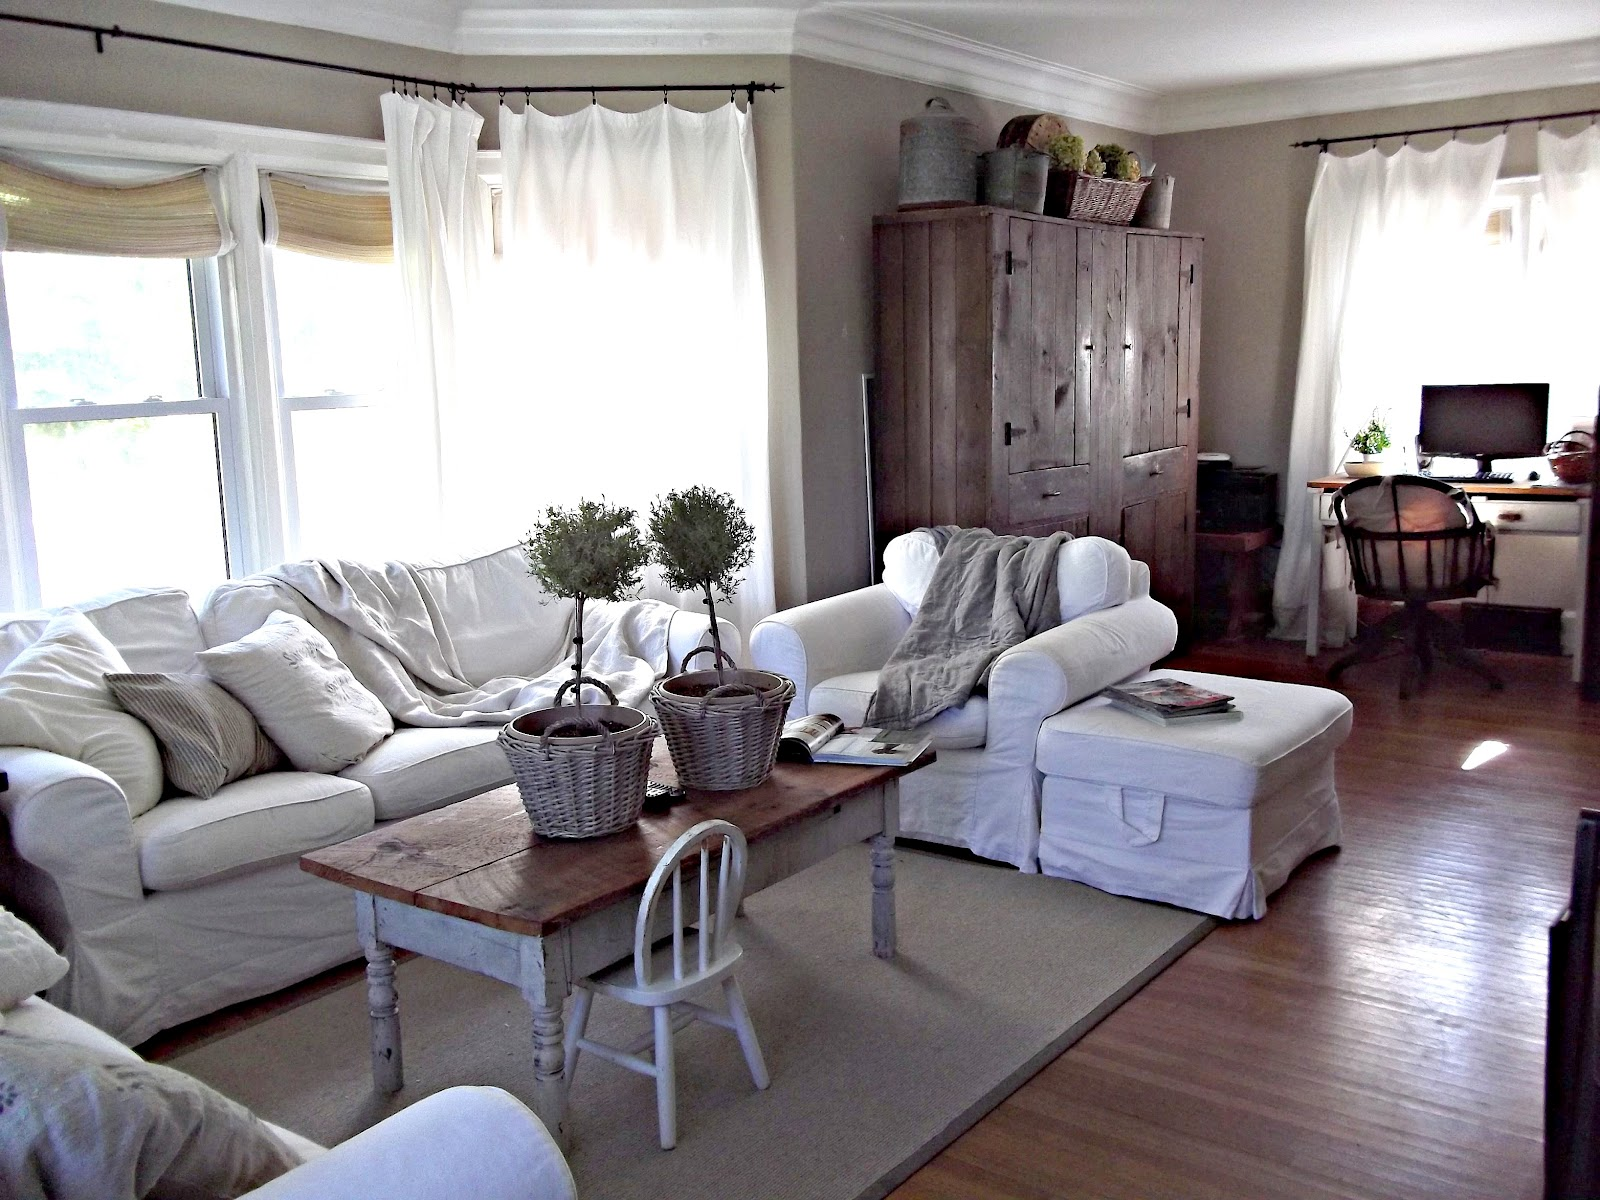 Rustic farmhouse in the livingroom today for Living room today